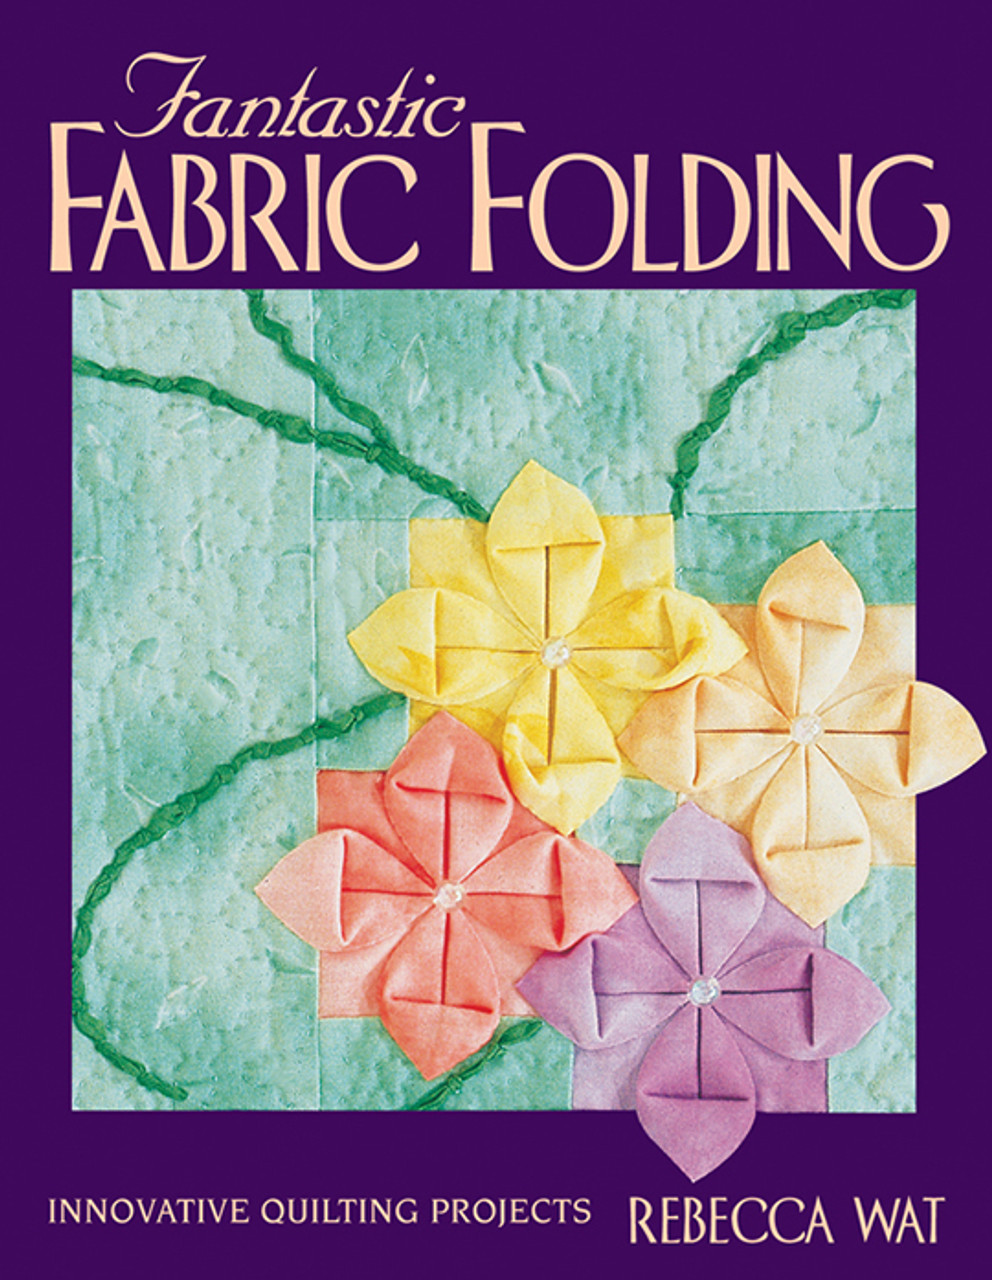 Fantastic Fabric Folding Quilting Book by Rebecca Wat Softcover 95 Pages